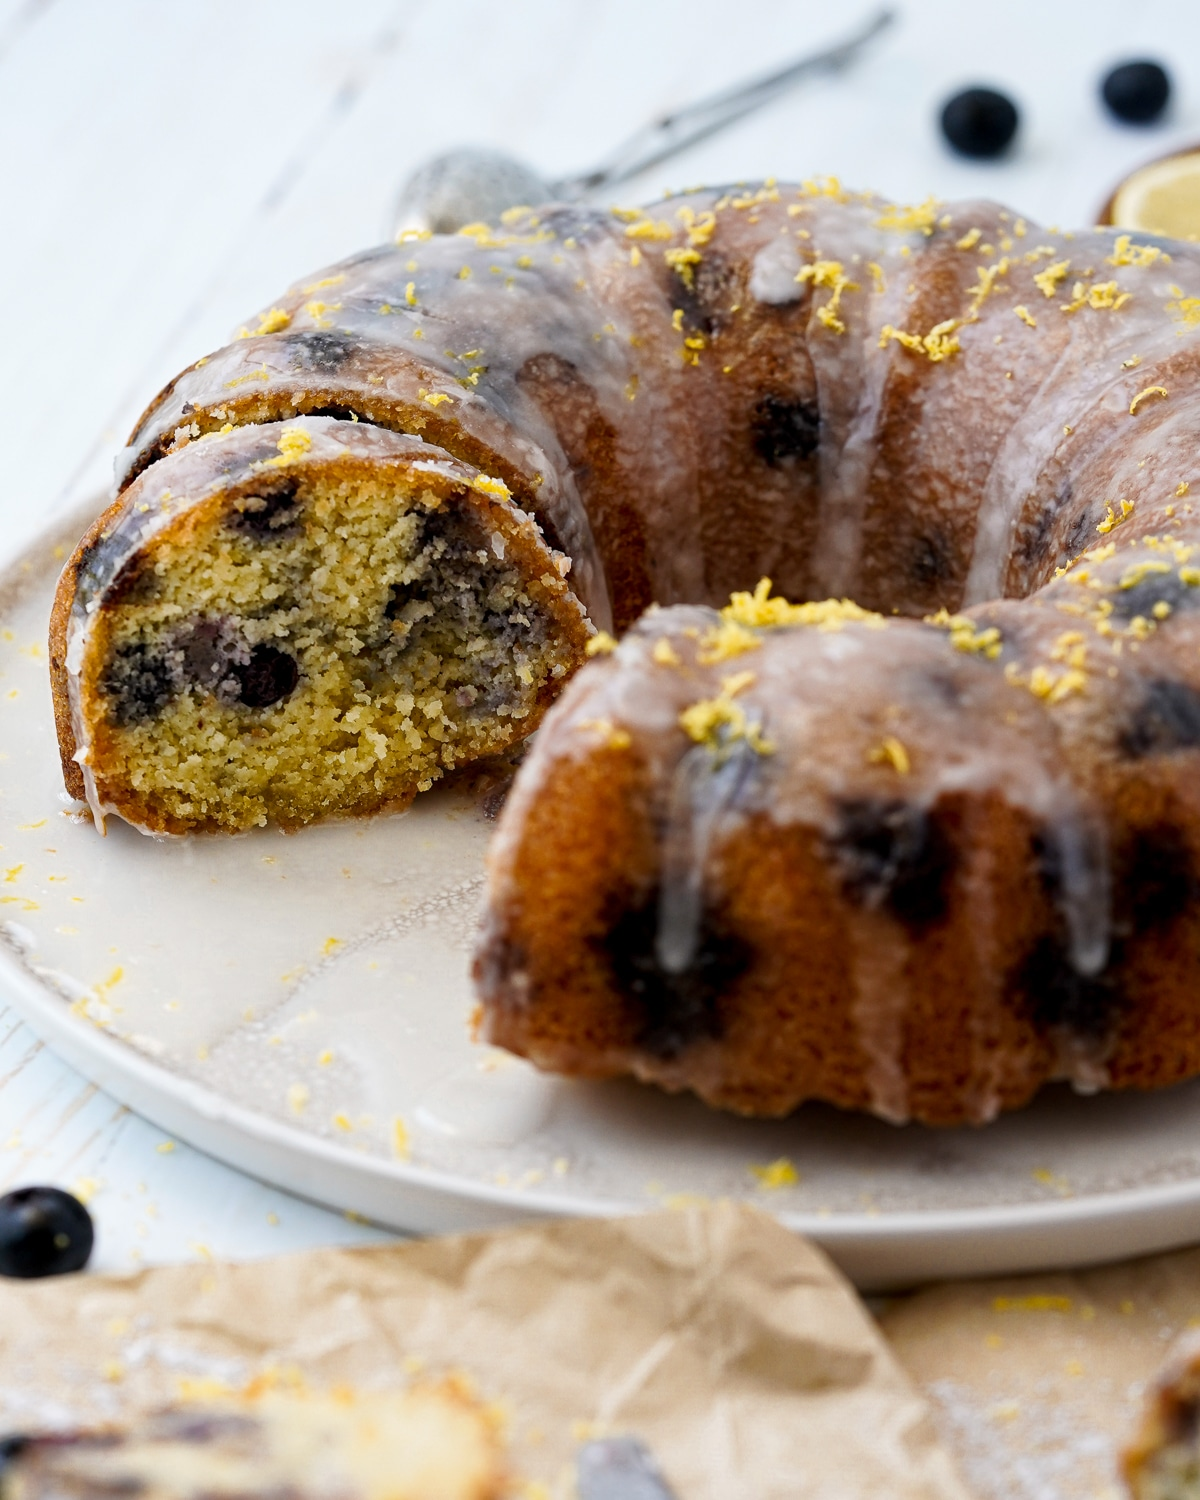 Tender lemon blueberry cake with a wonderfully light lemon glaze, this is low carb, gluten free, sugar free and seriously delicious.